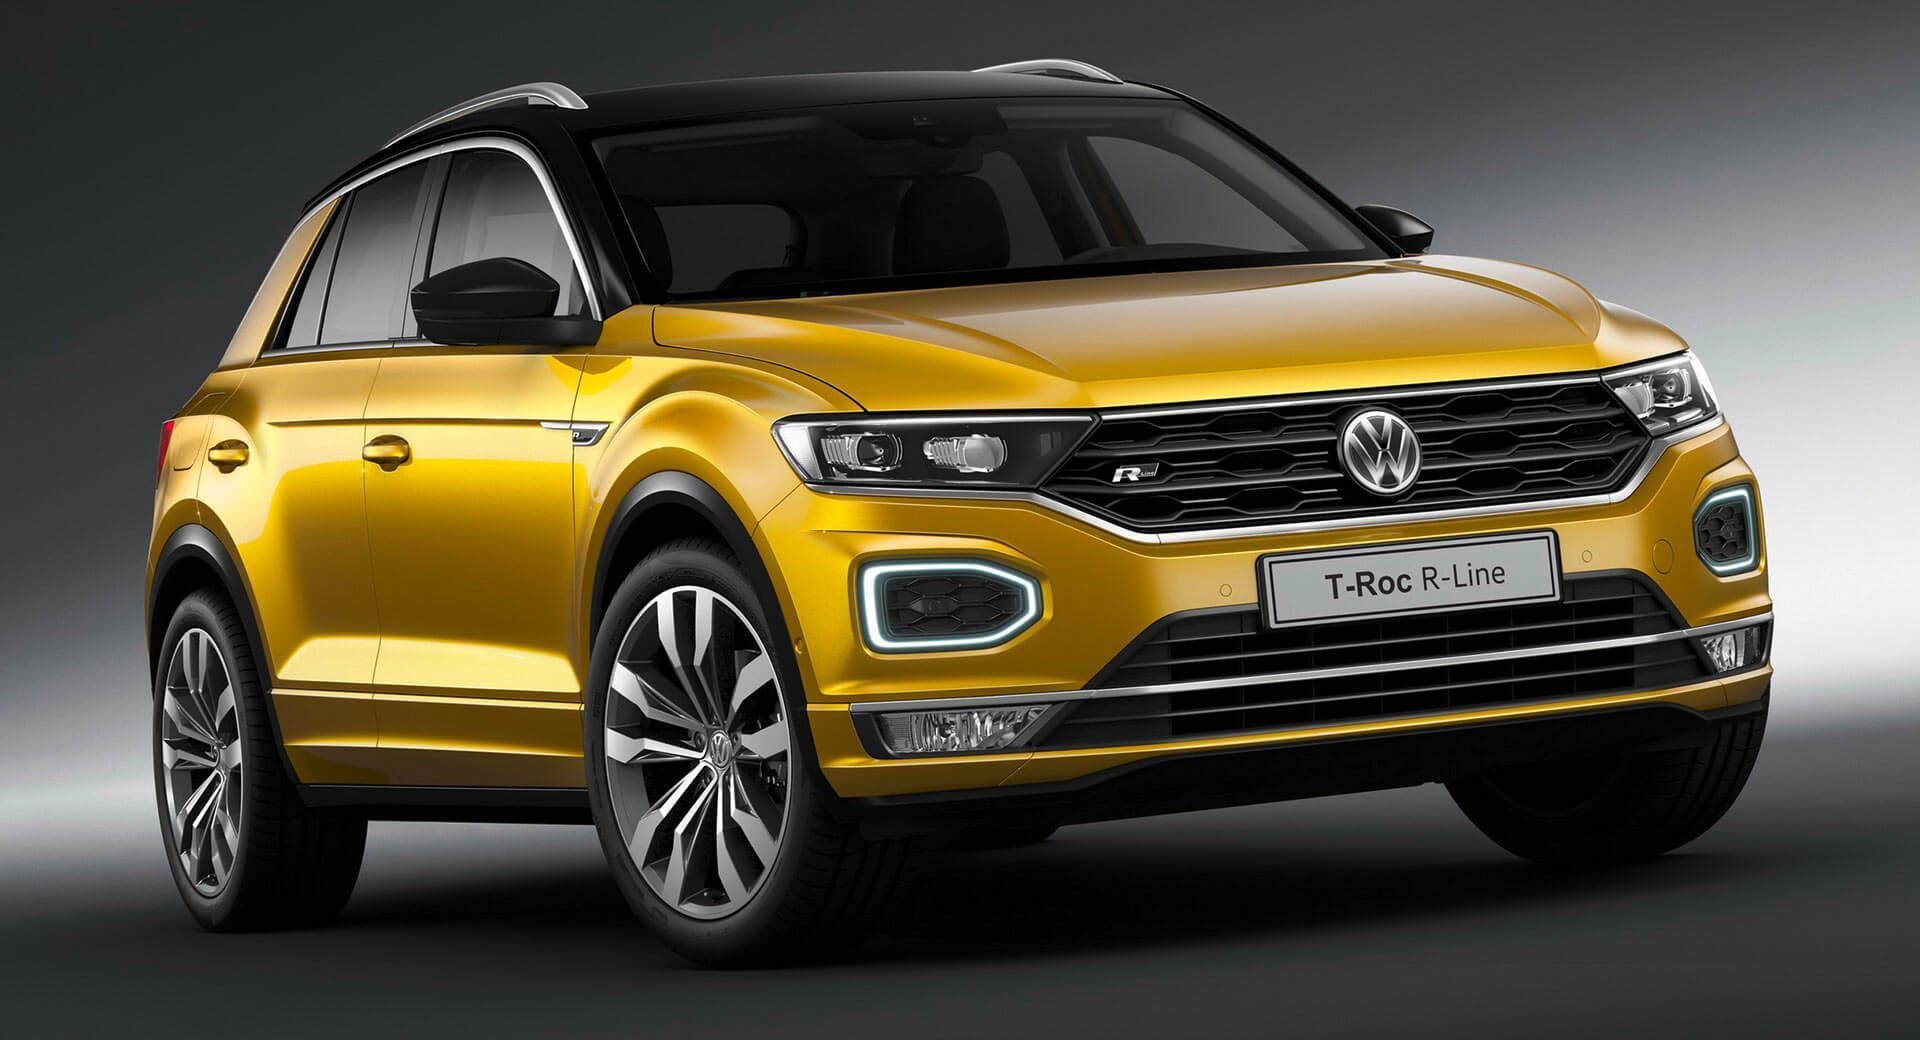 Vw T Roc And Tiguan Allspace Try To Look Fast With R Line Trims News New Cars Volkswagentiguan Volkswagen Compact Suv Volkswagen Models